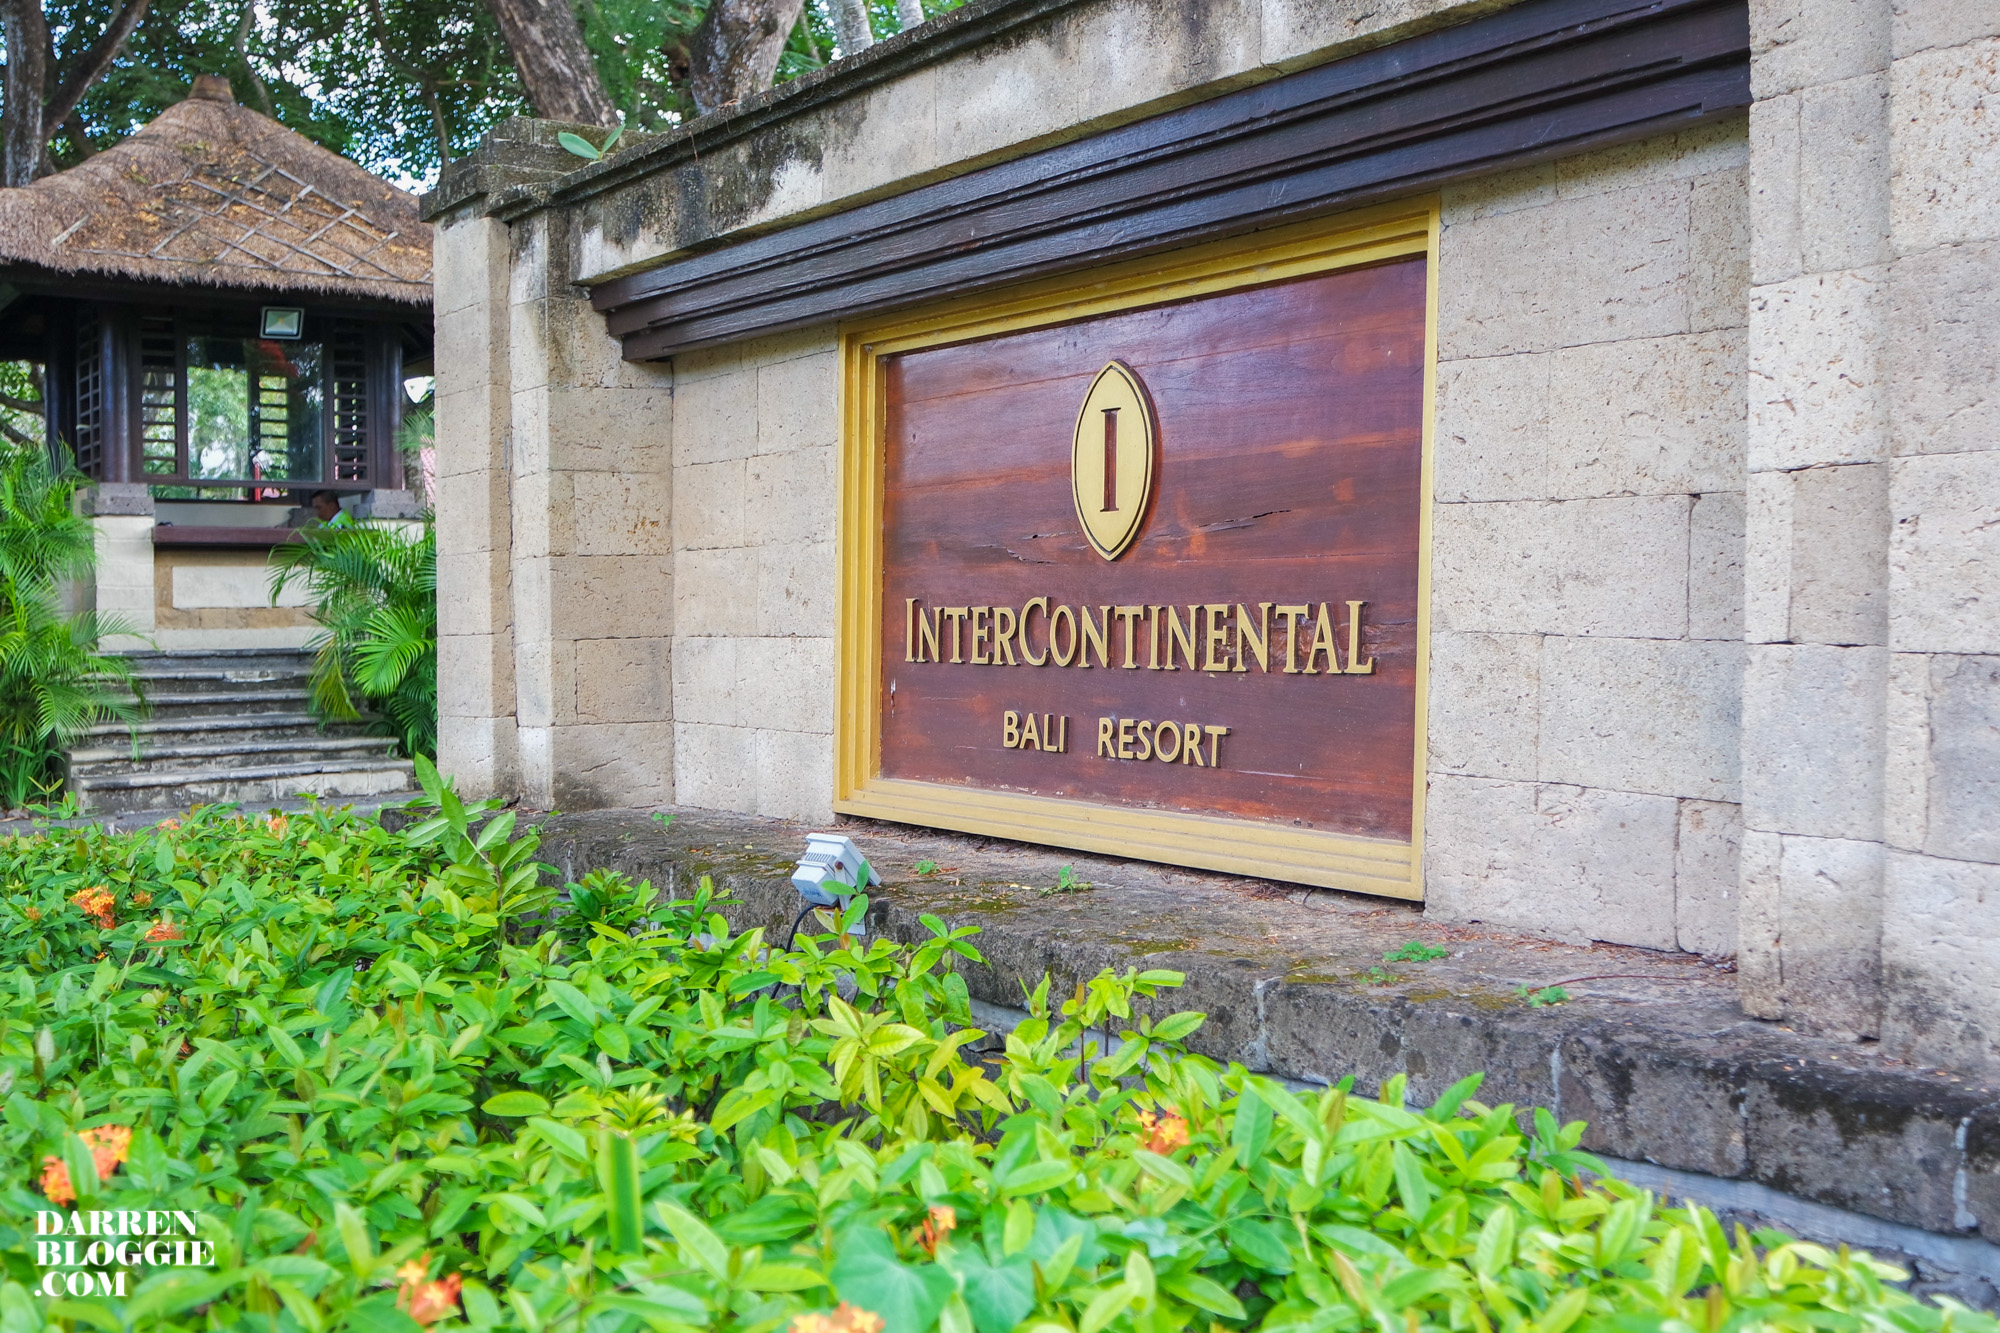 intercontinental-bali-resort-8130